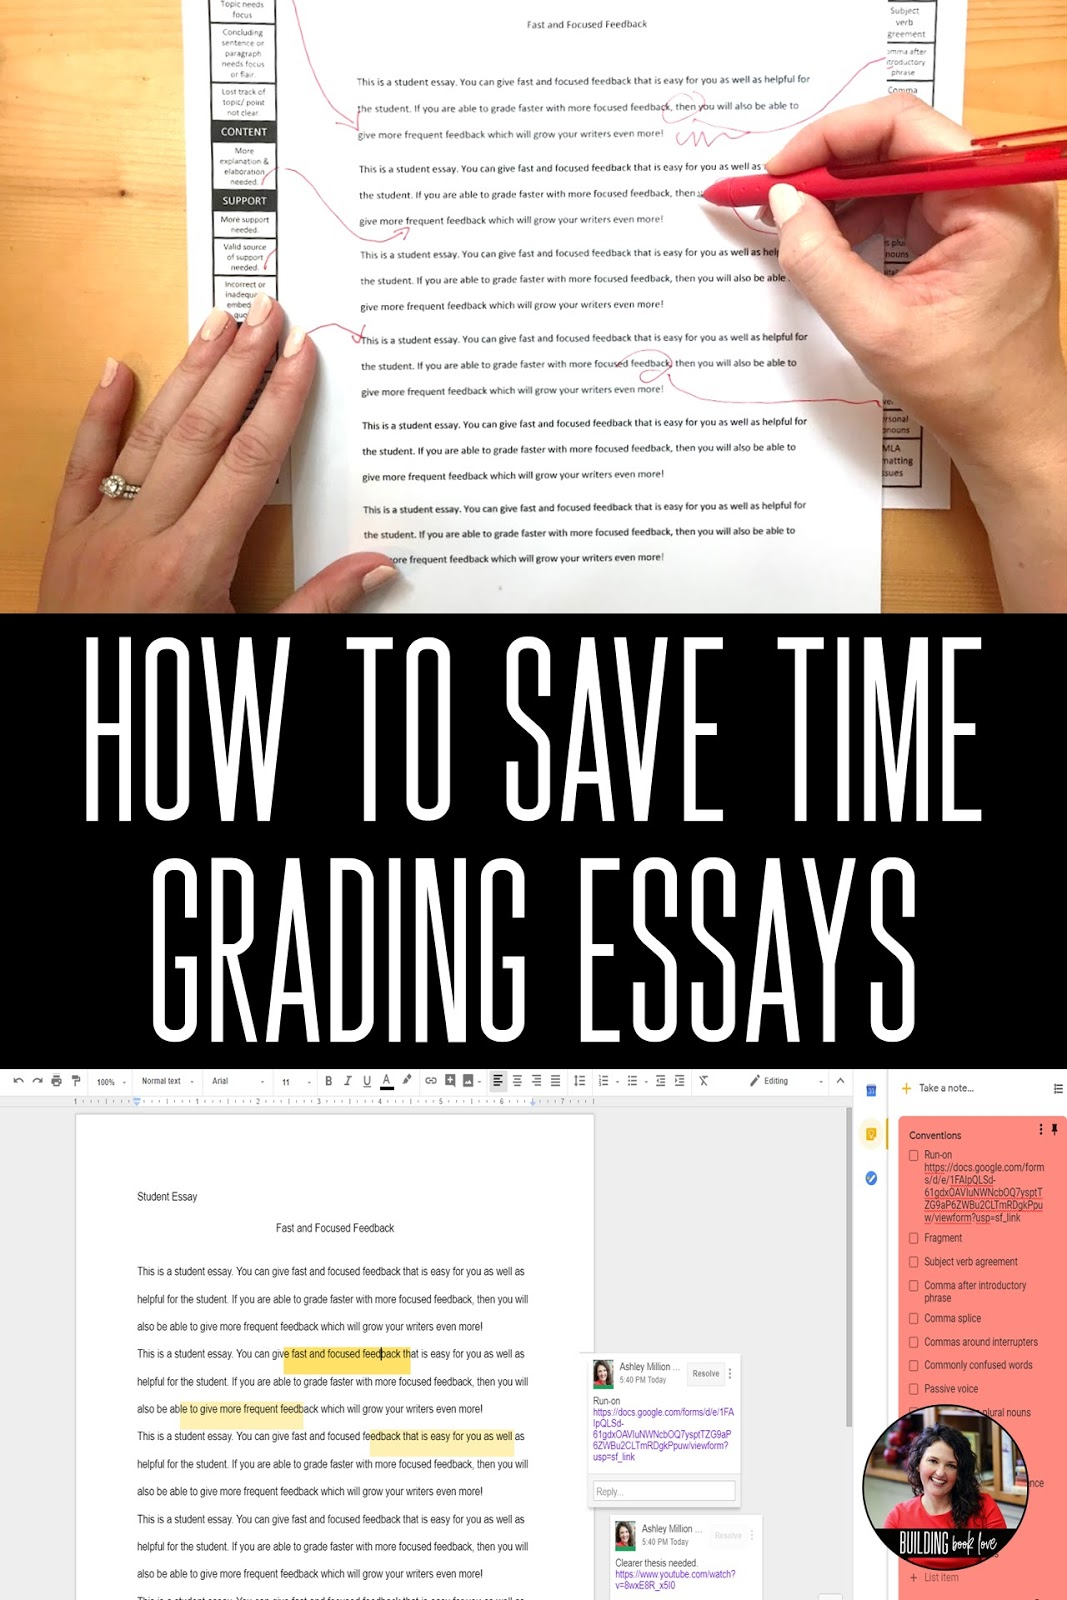 Argument Essay Paper Outline  Essay Grading Tips For Grading Essays Faster And More Efficiently Save  Time Grading Essays Online Or In Print Protein Synthesis Essay also Essay Writings In English Building Book Love   Essay Grading Tips For Grading Essays Faster  Science And Technology Essays